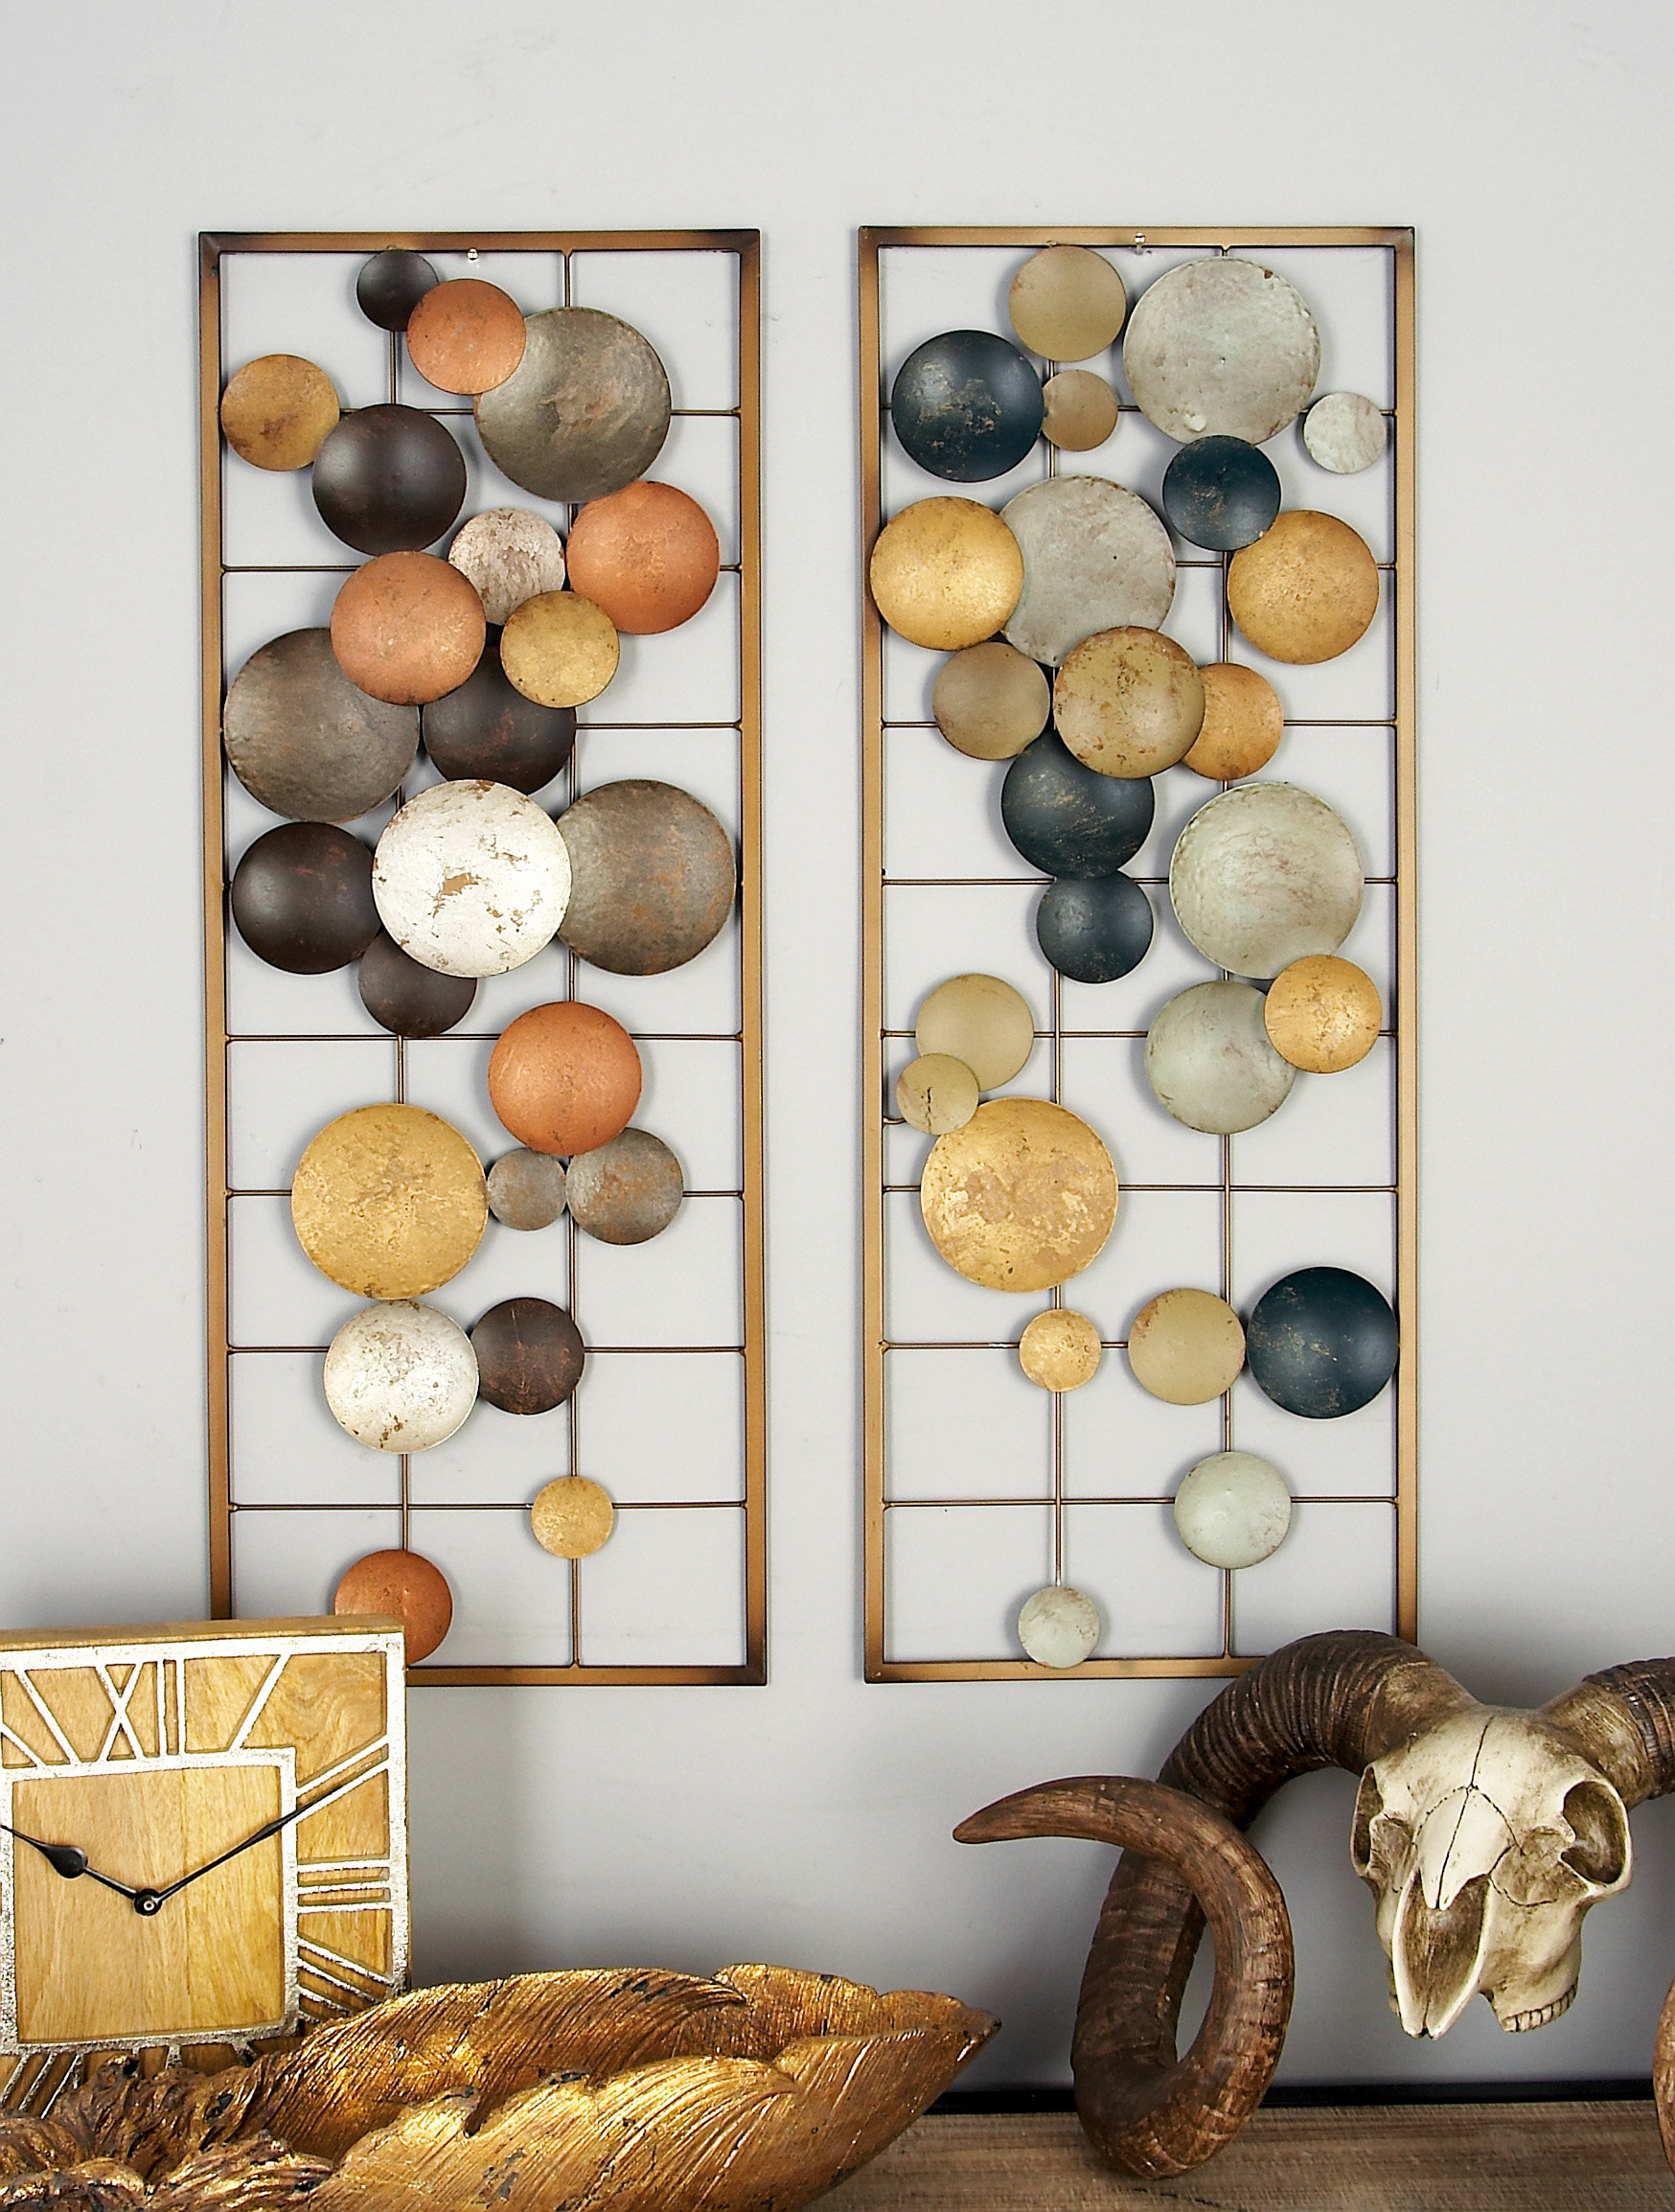 Mirror Wall Decor Set | Wayfair Intended For 2 Piece Panel Wood Wall Decor Sets (set Of 2) (View 17 of 30)